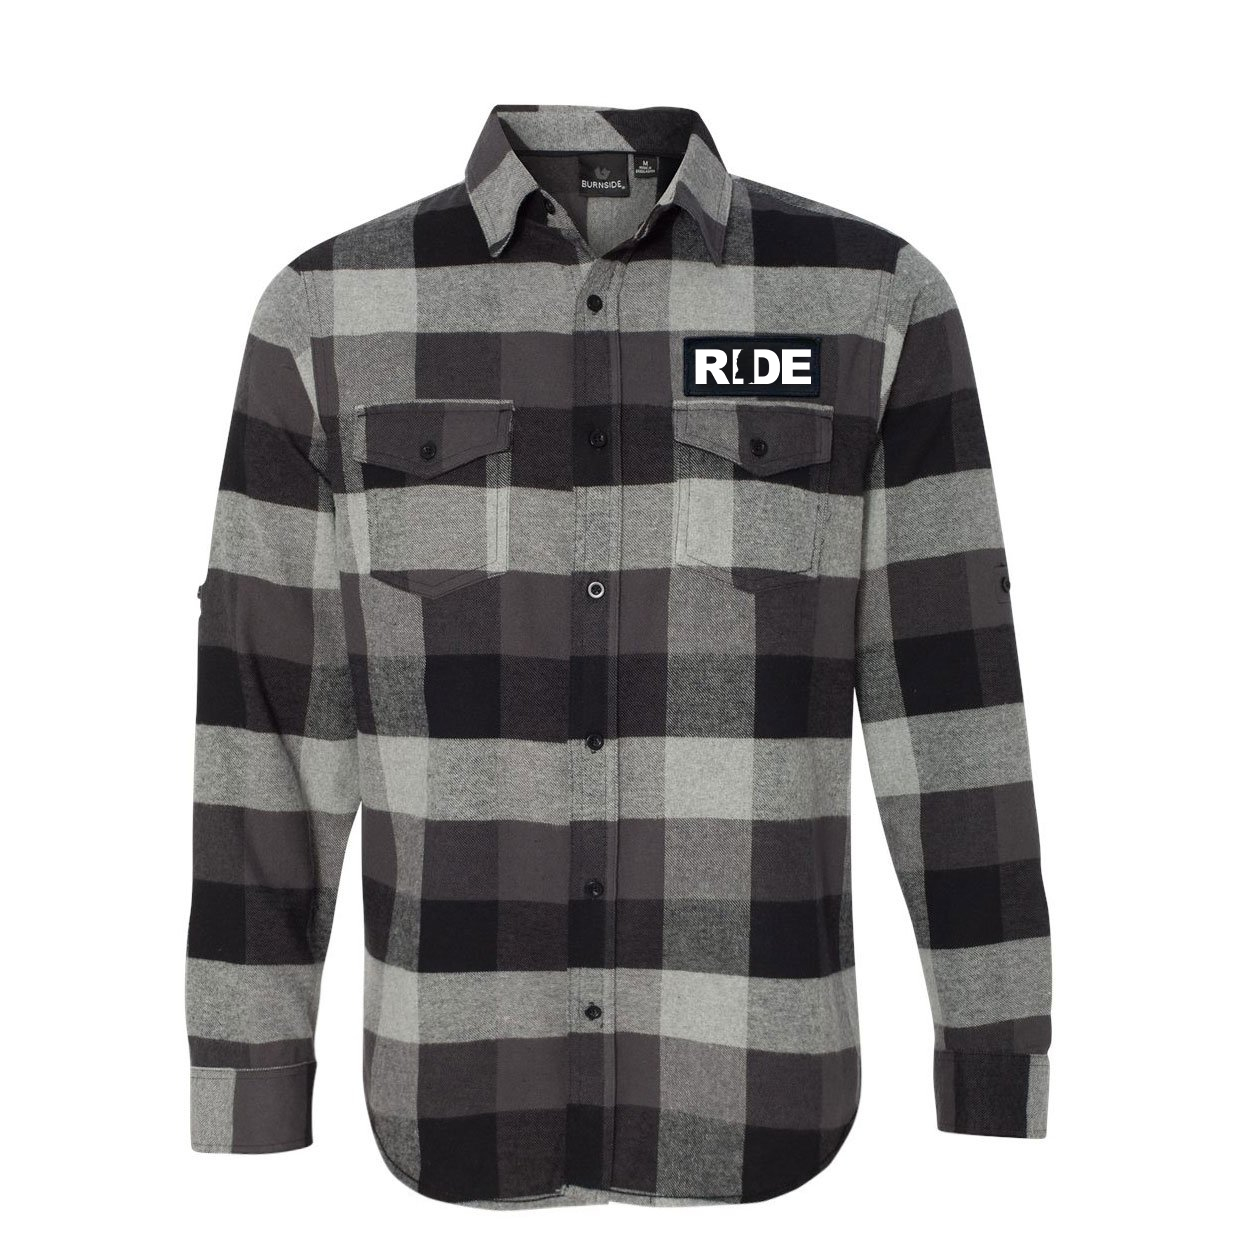 Ride Mississippi Classic Unisex Long Sleeve Woven Patch Flannel Shirt Black/Gray (White Logo)